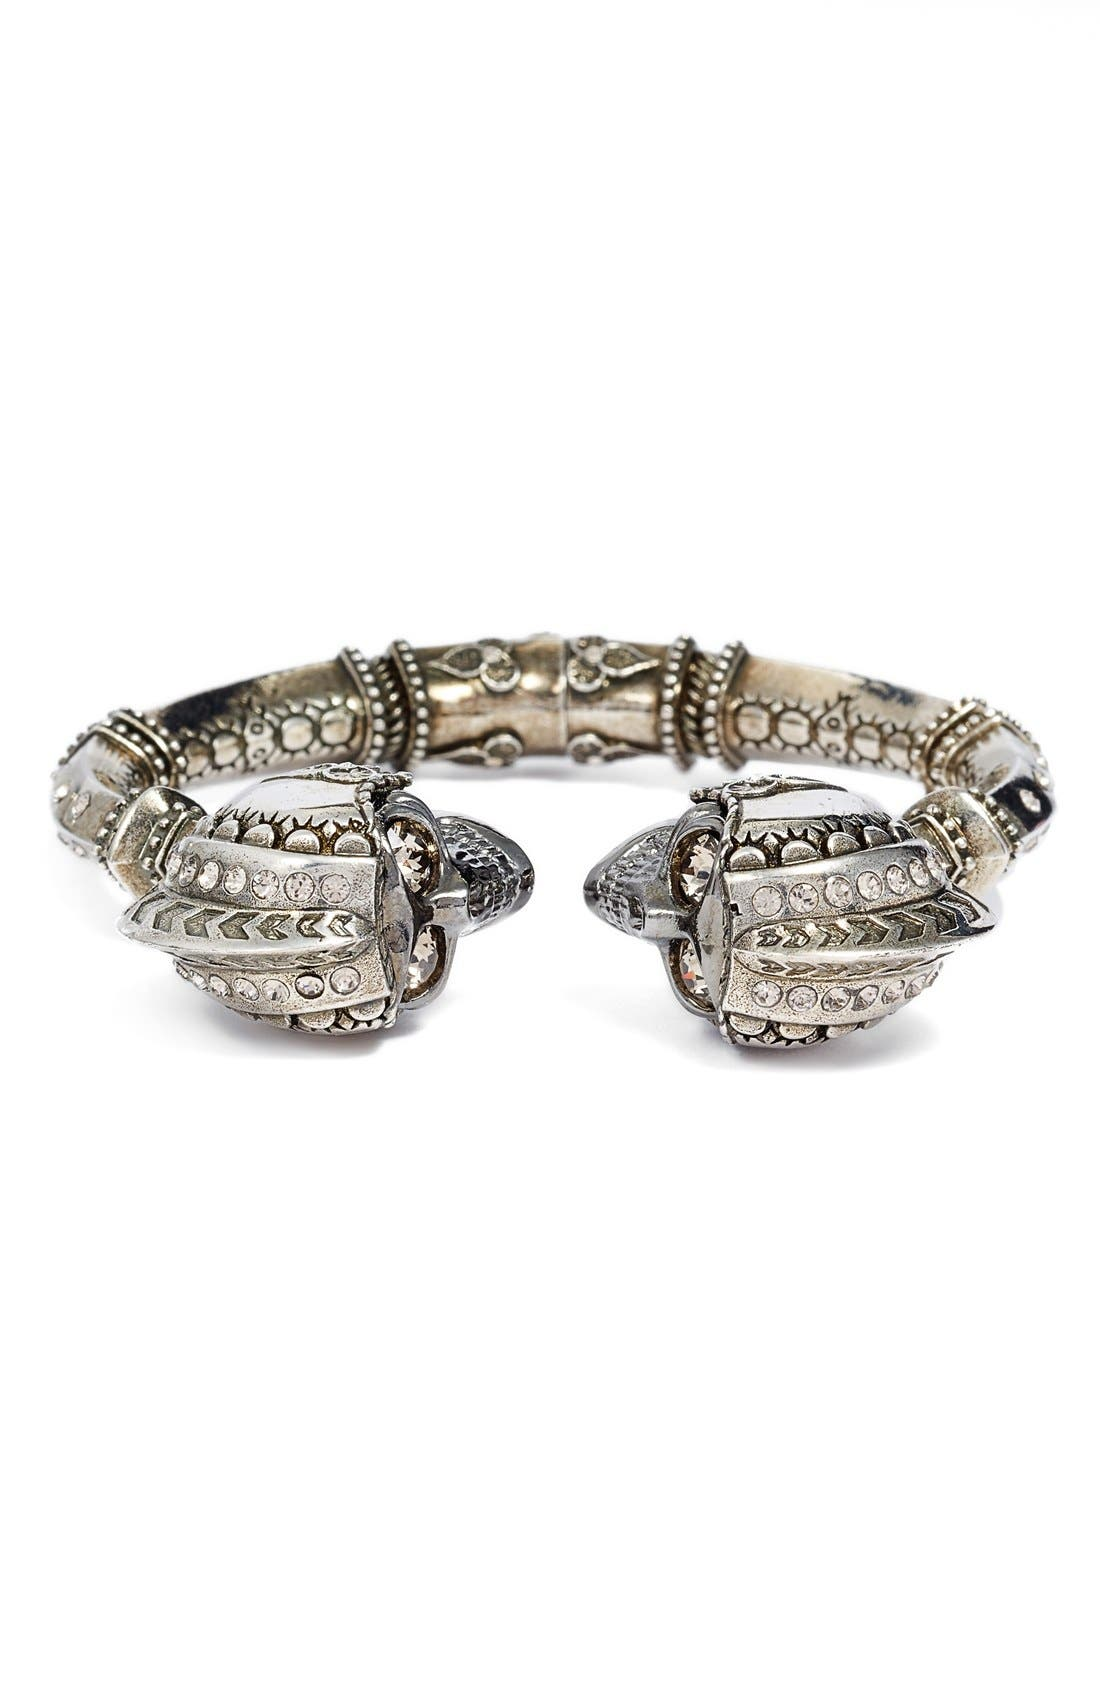 Alternate Image 1 Selected - Alexander McQueen 'Armour' Twin Skull Cuff